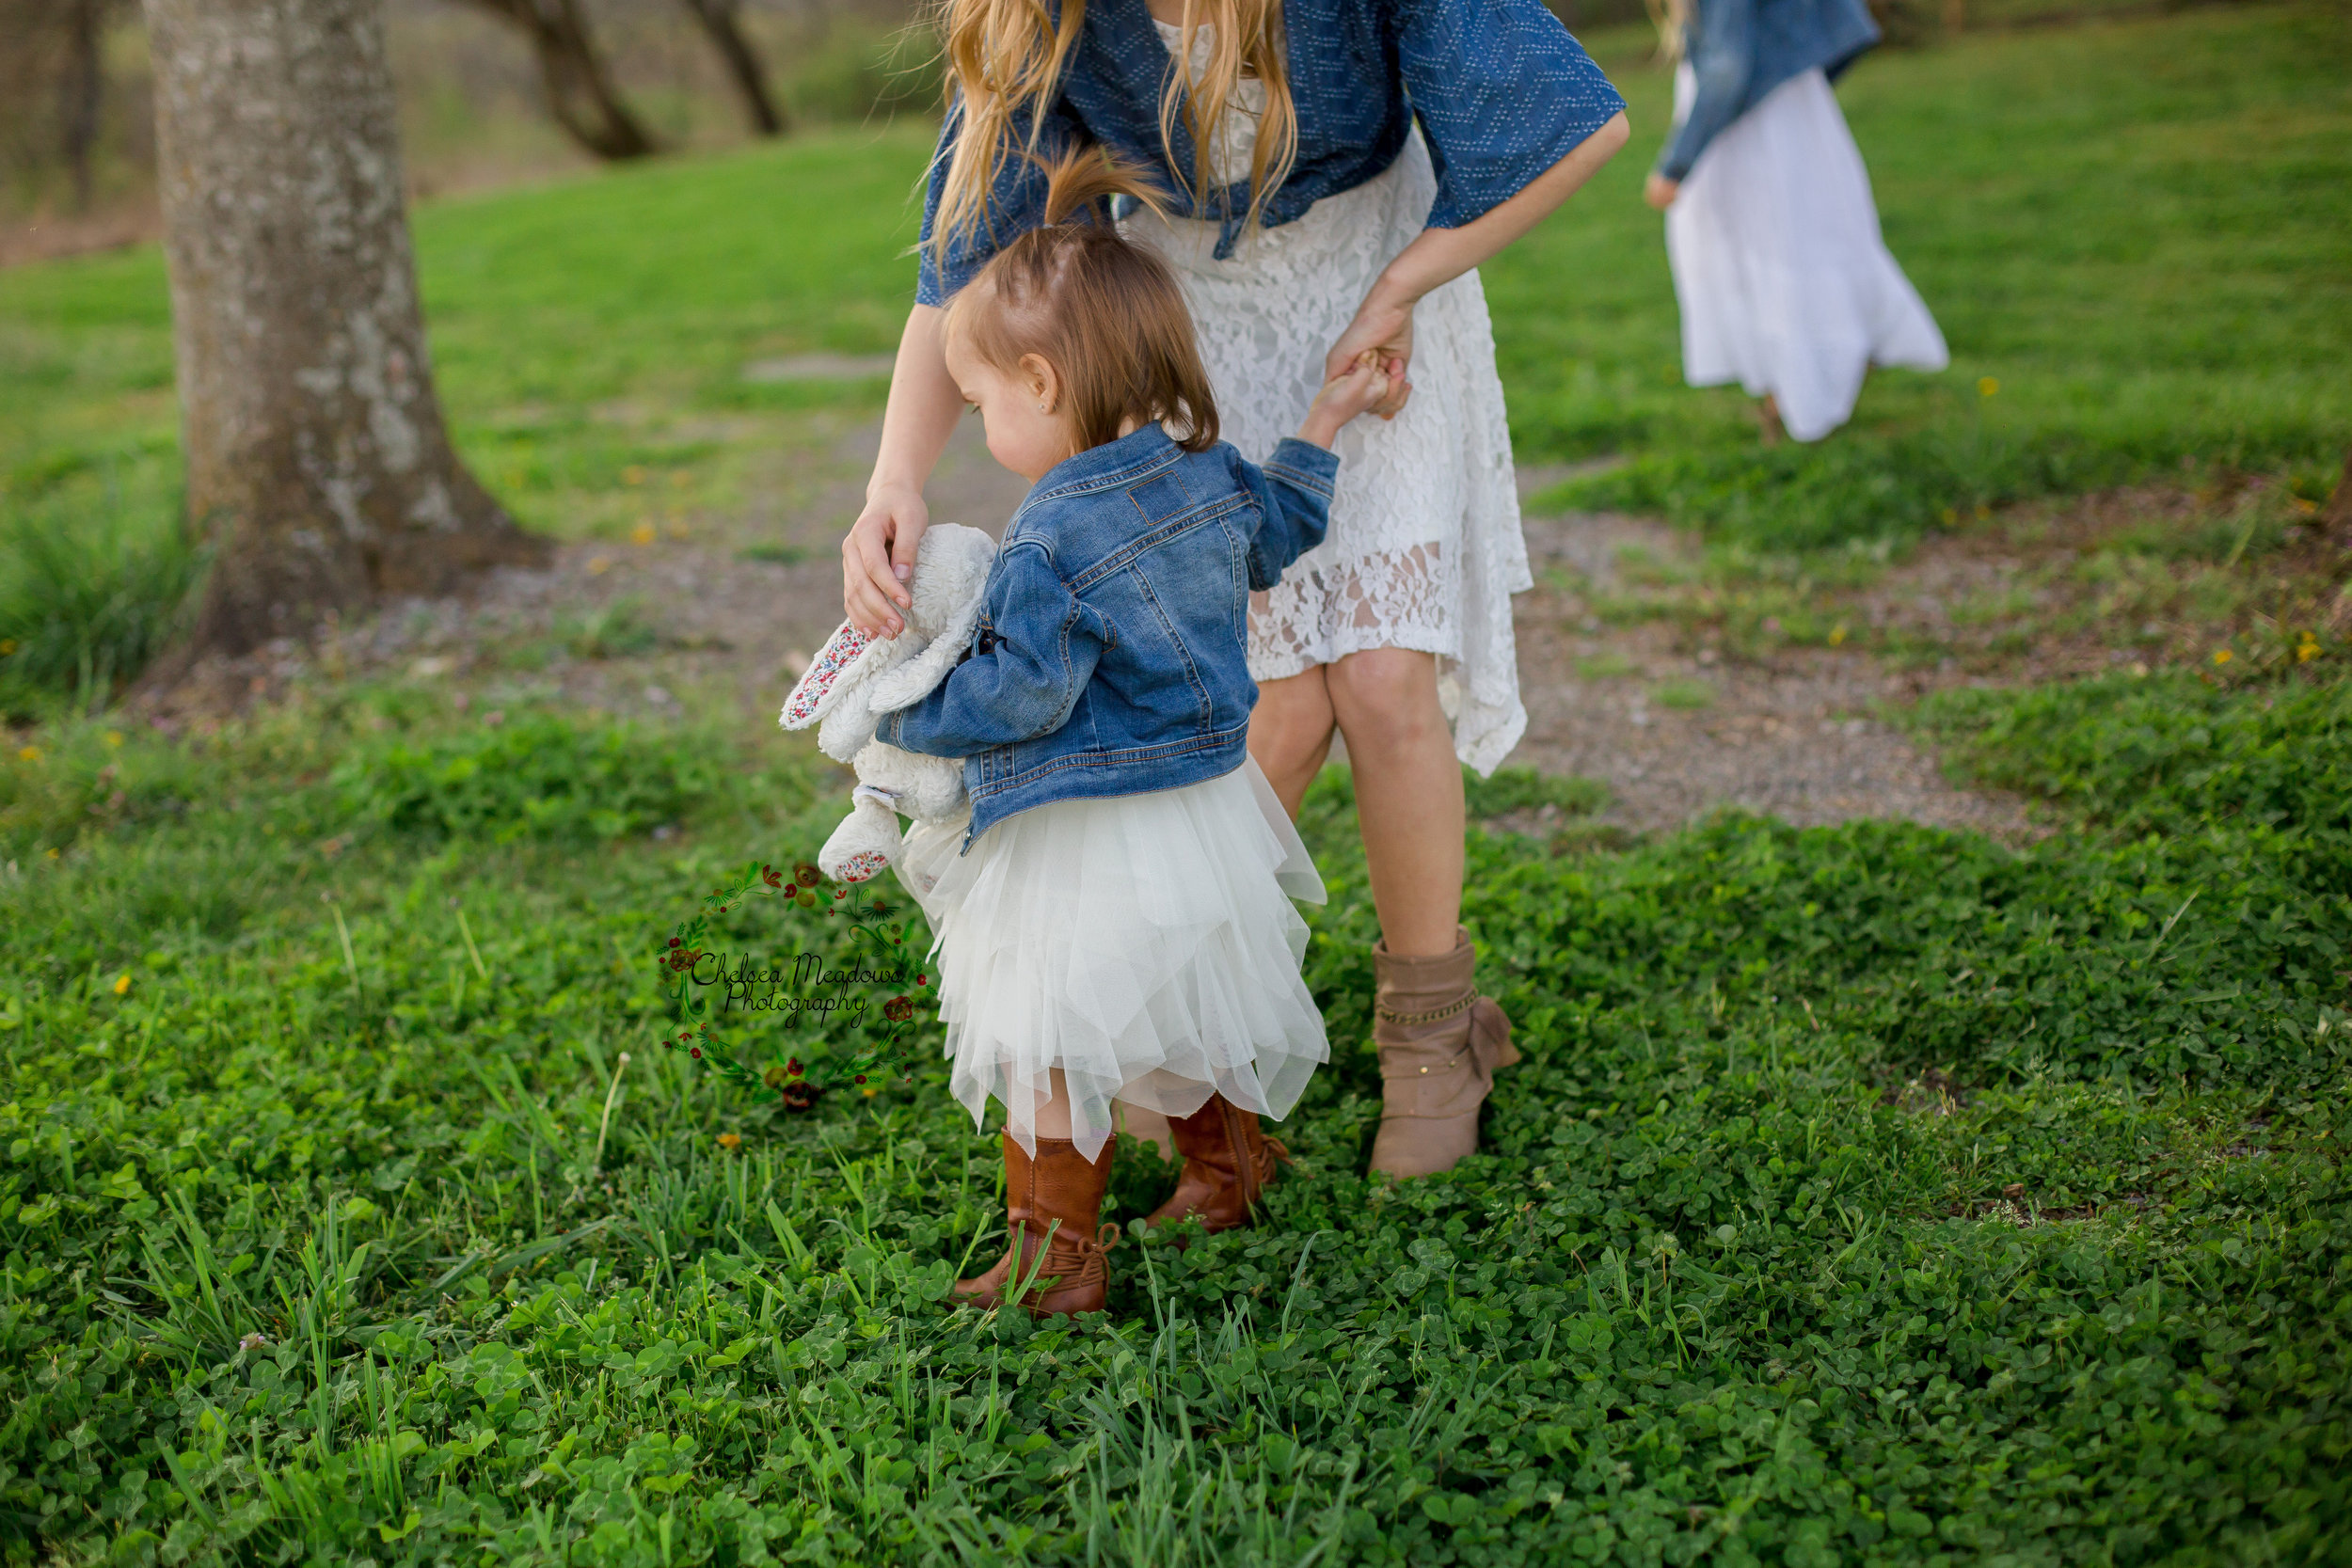 Gann Maternity Session - Nashville Maternity Photographer - Chelsea Meadows Photography (35).jpg